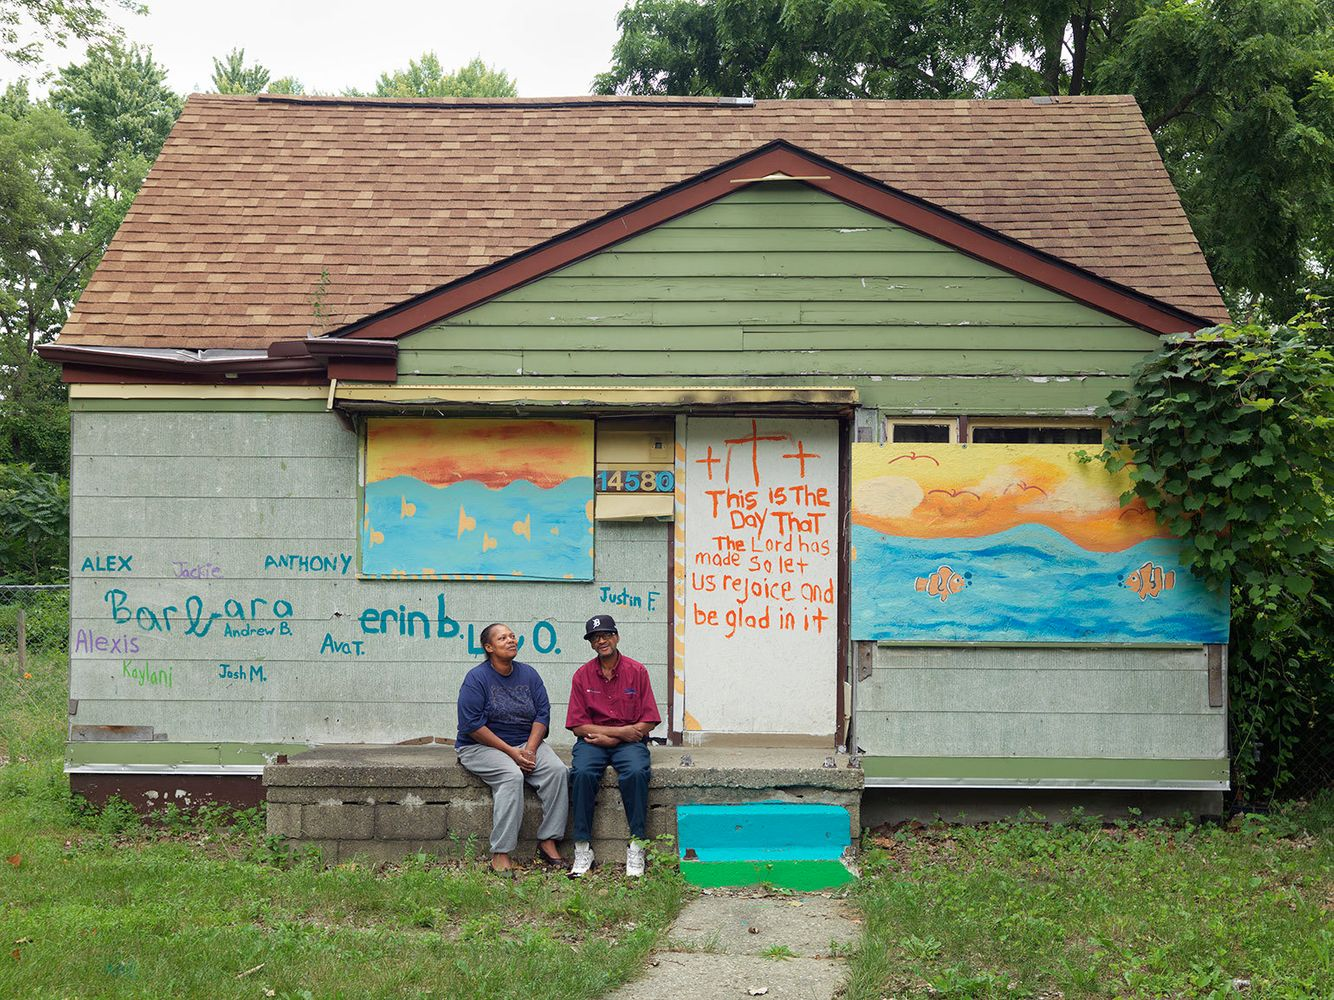 Jackie and Donny, Brightmoor Neighborhood, Detroit 2013